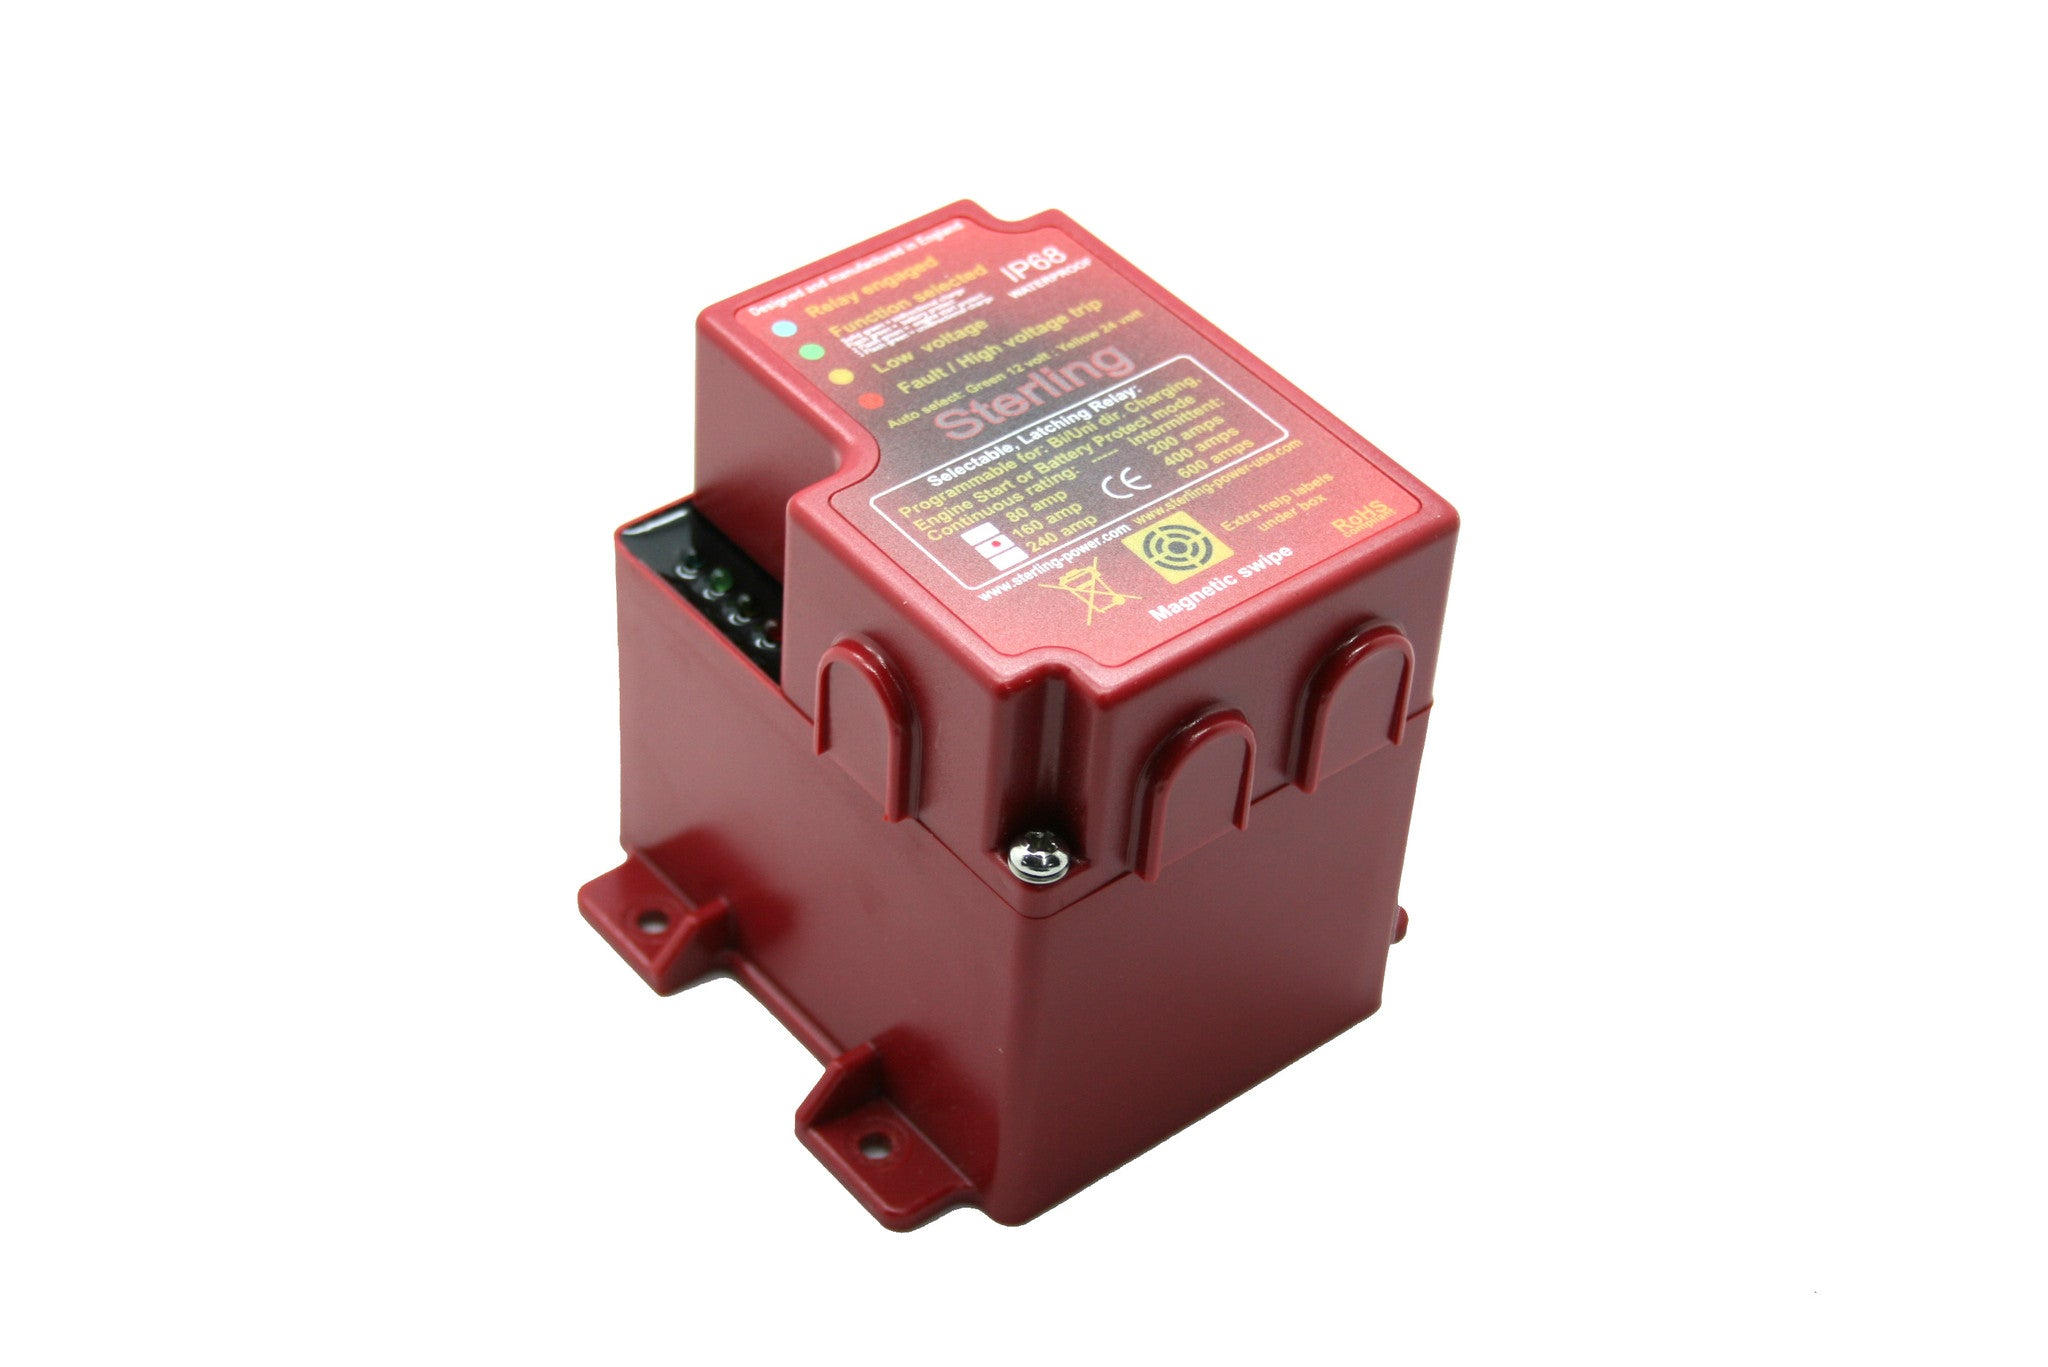 latching relay pro latch r sterling power products 12 Volt Latching Relay Diagram latching relay pro latch r 12 volt latching relay diagram